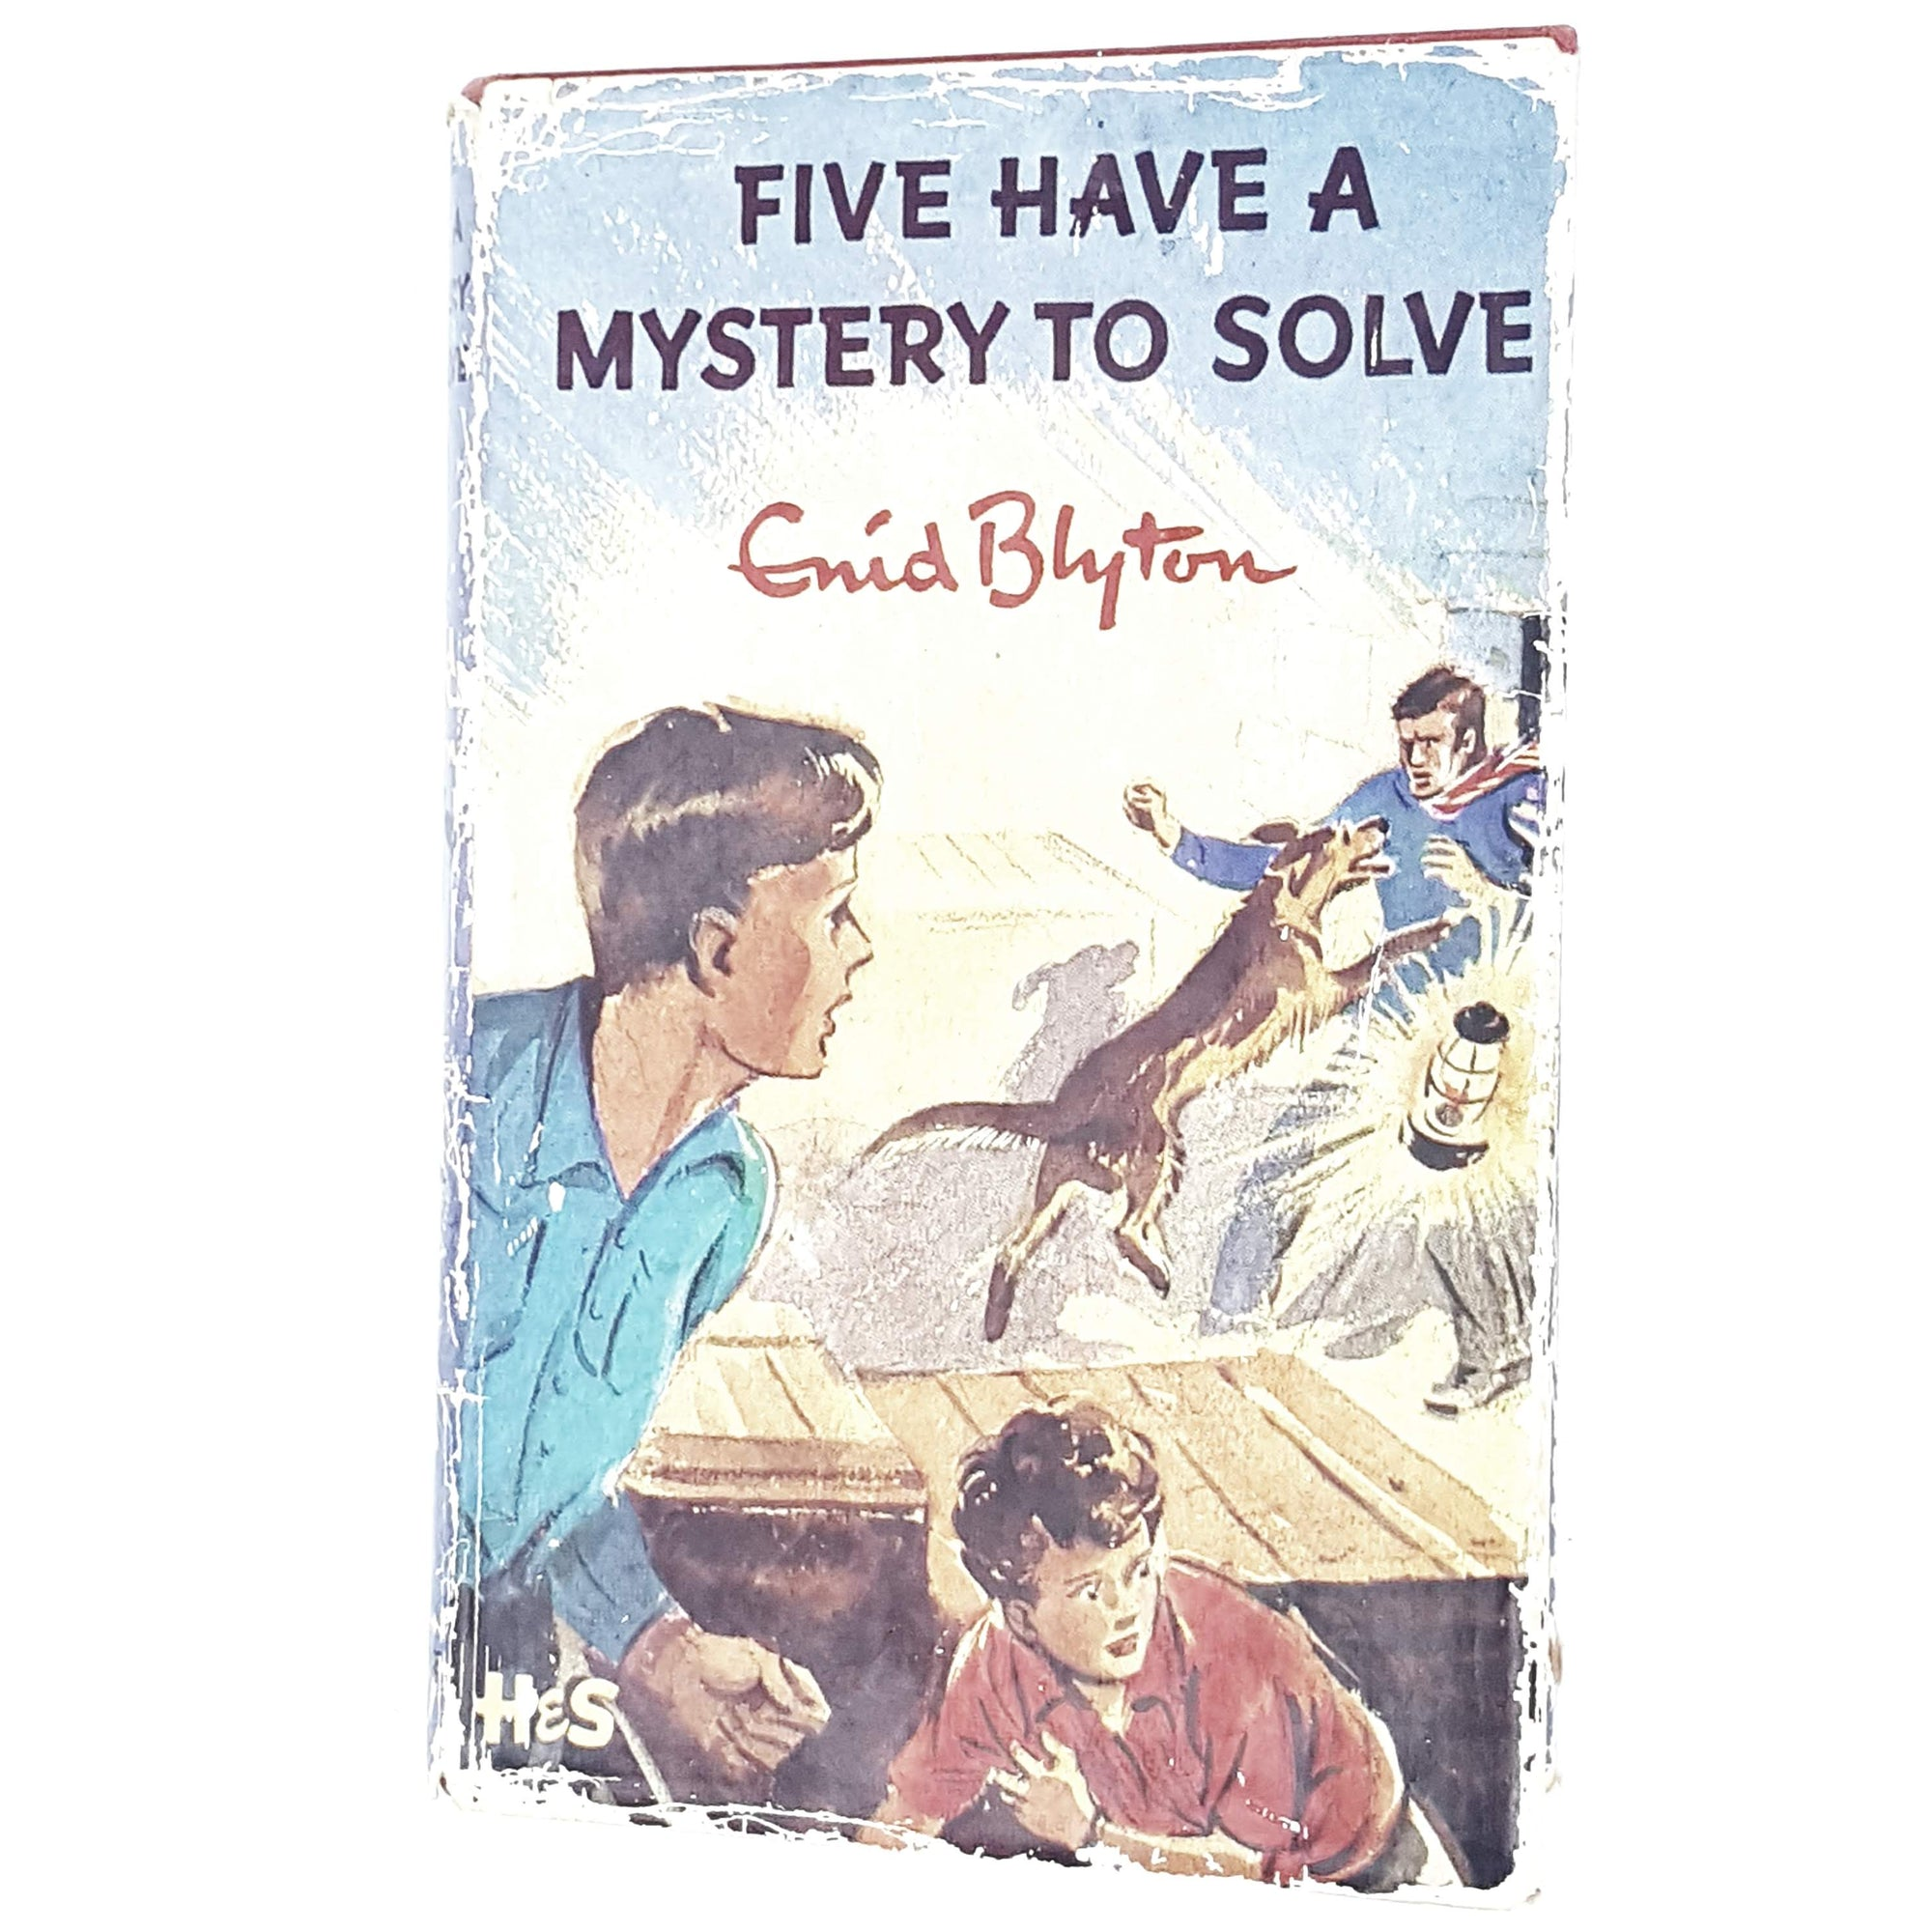 five-mystery-enid-blyton-kids-illustrated-vintage-book-country-library-book